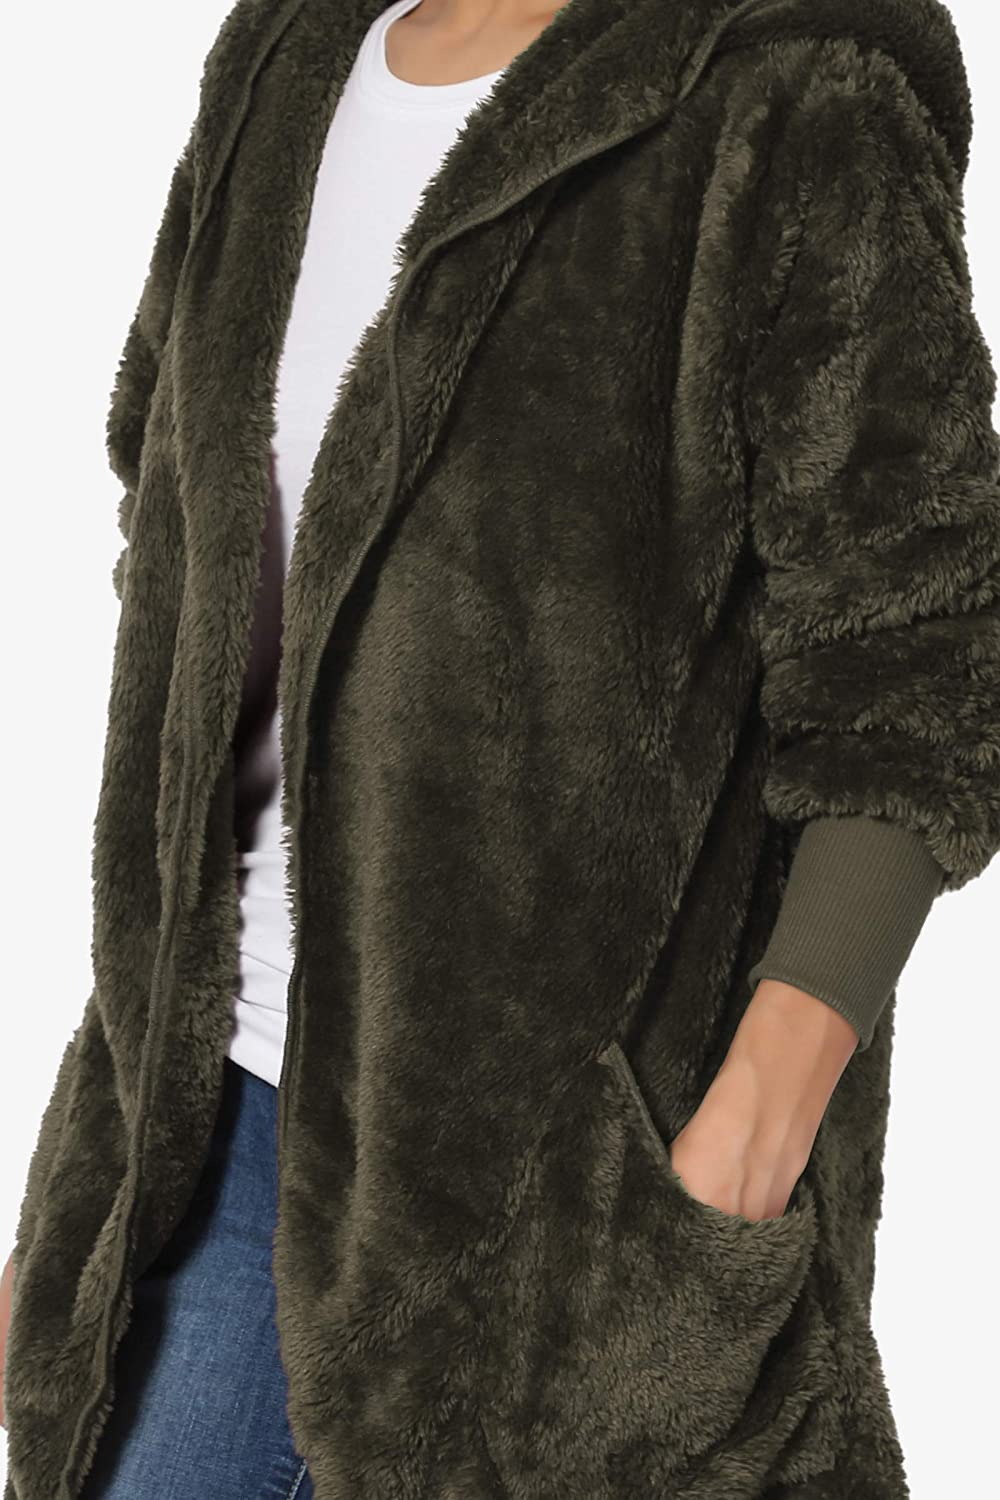 TheMogan S~3X Oversized Hooded Draped Pocket Cardigan Soft Fuzzy Plush Coat